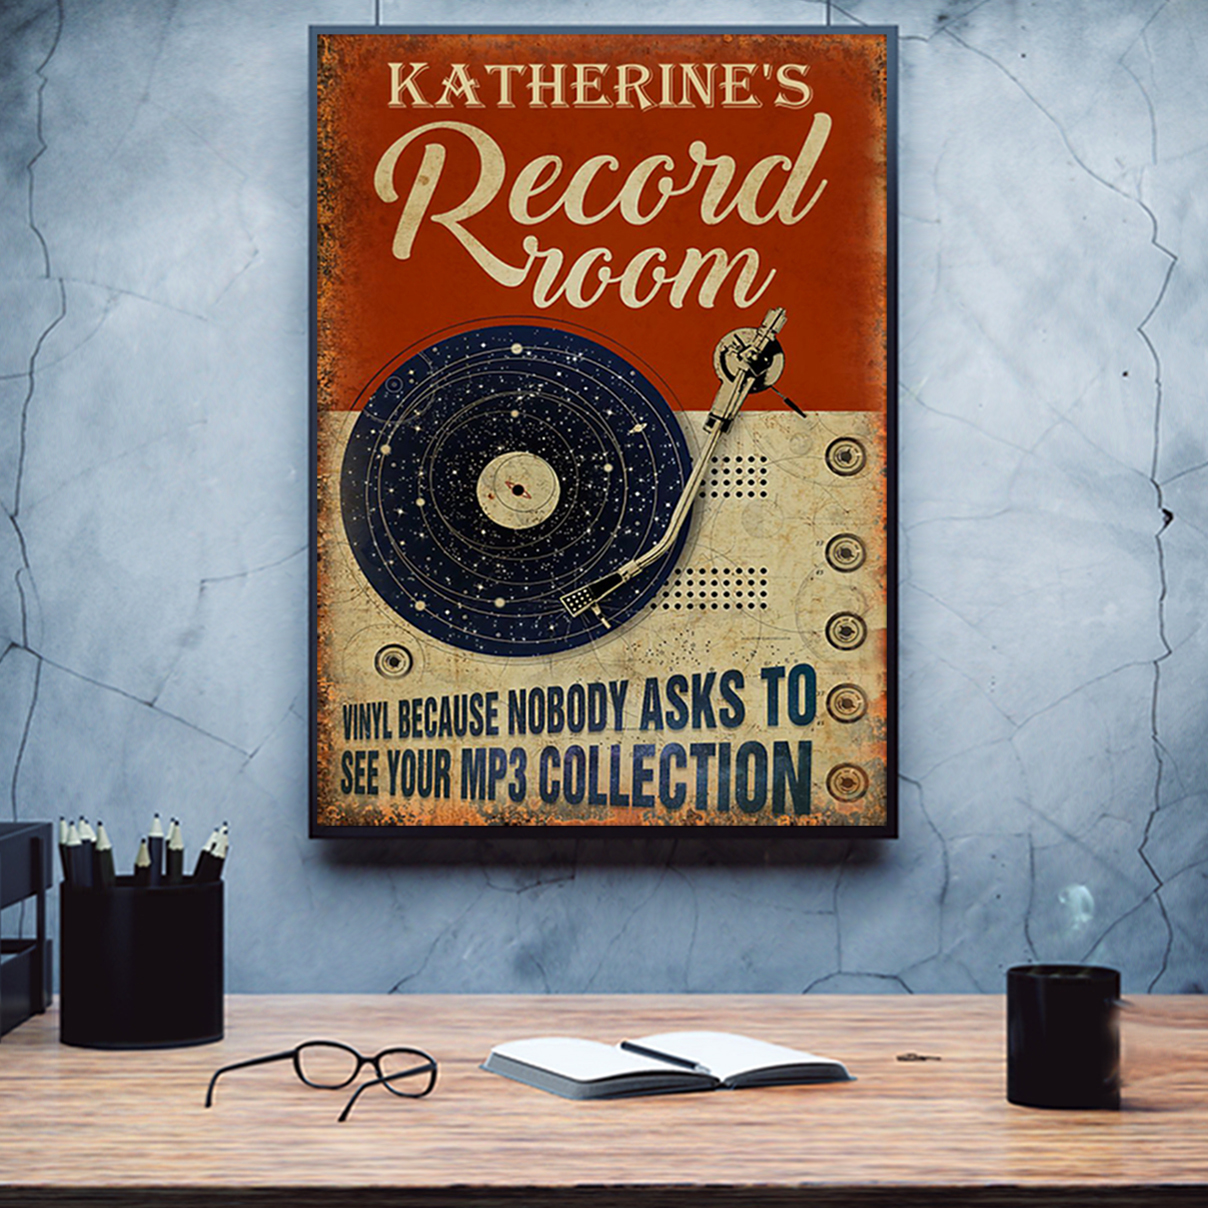 Katherine's record room vinyl because nobody ask to see your mp3 collection poster A2